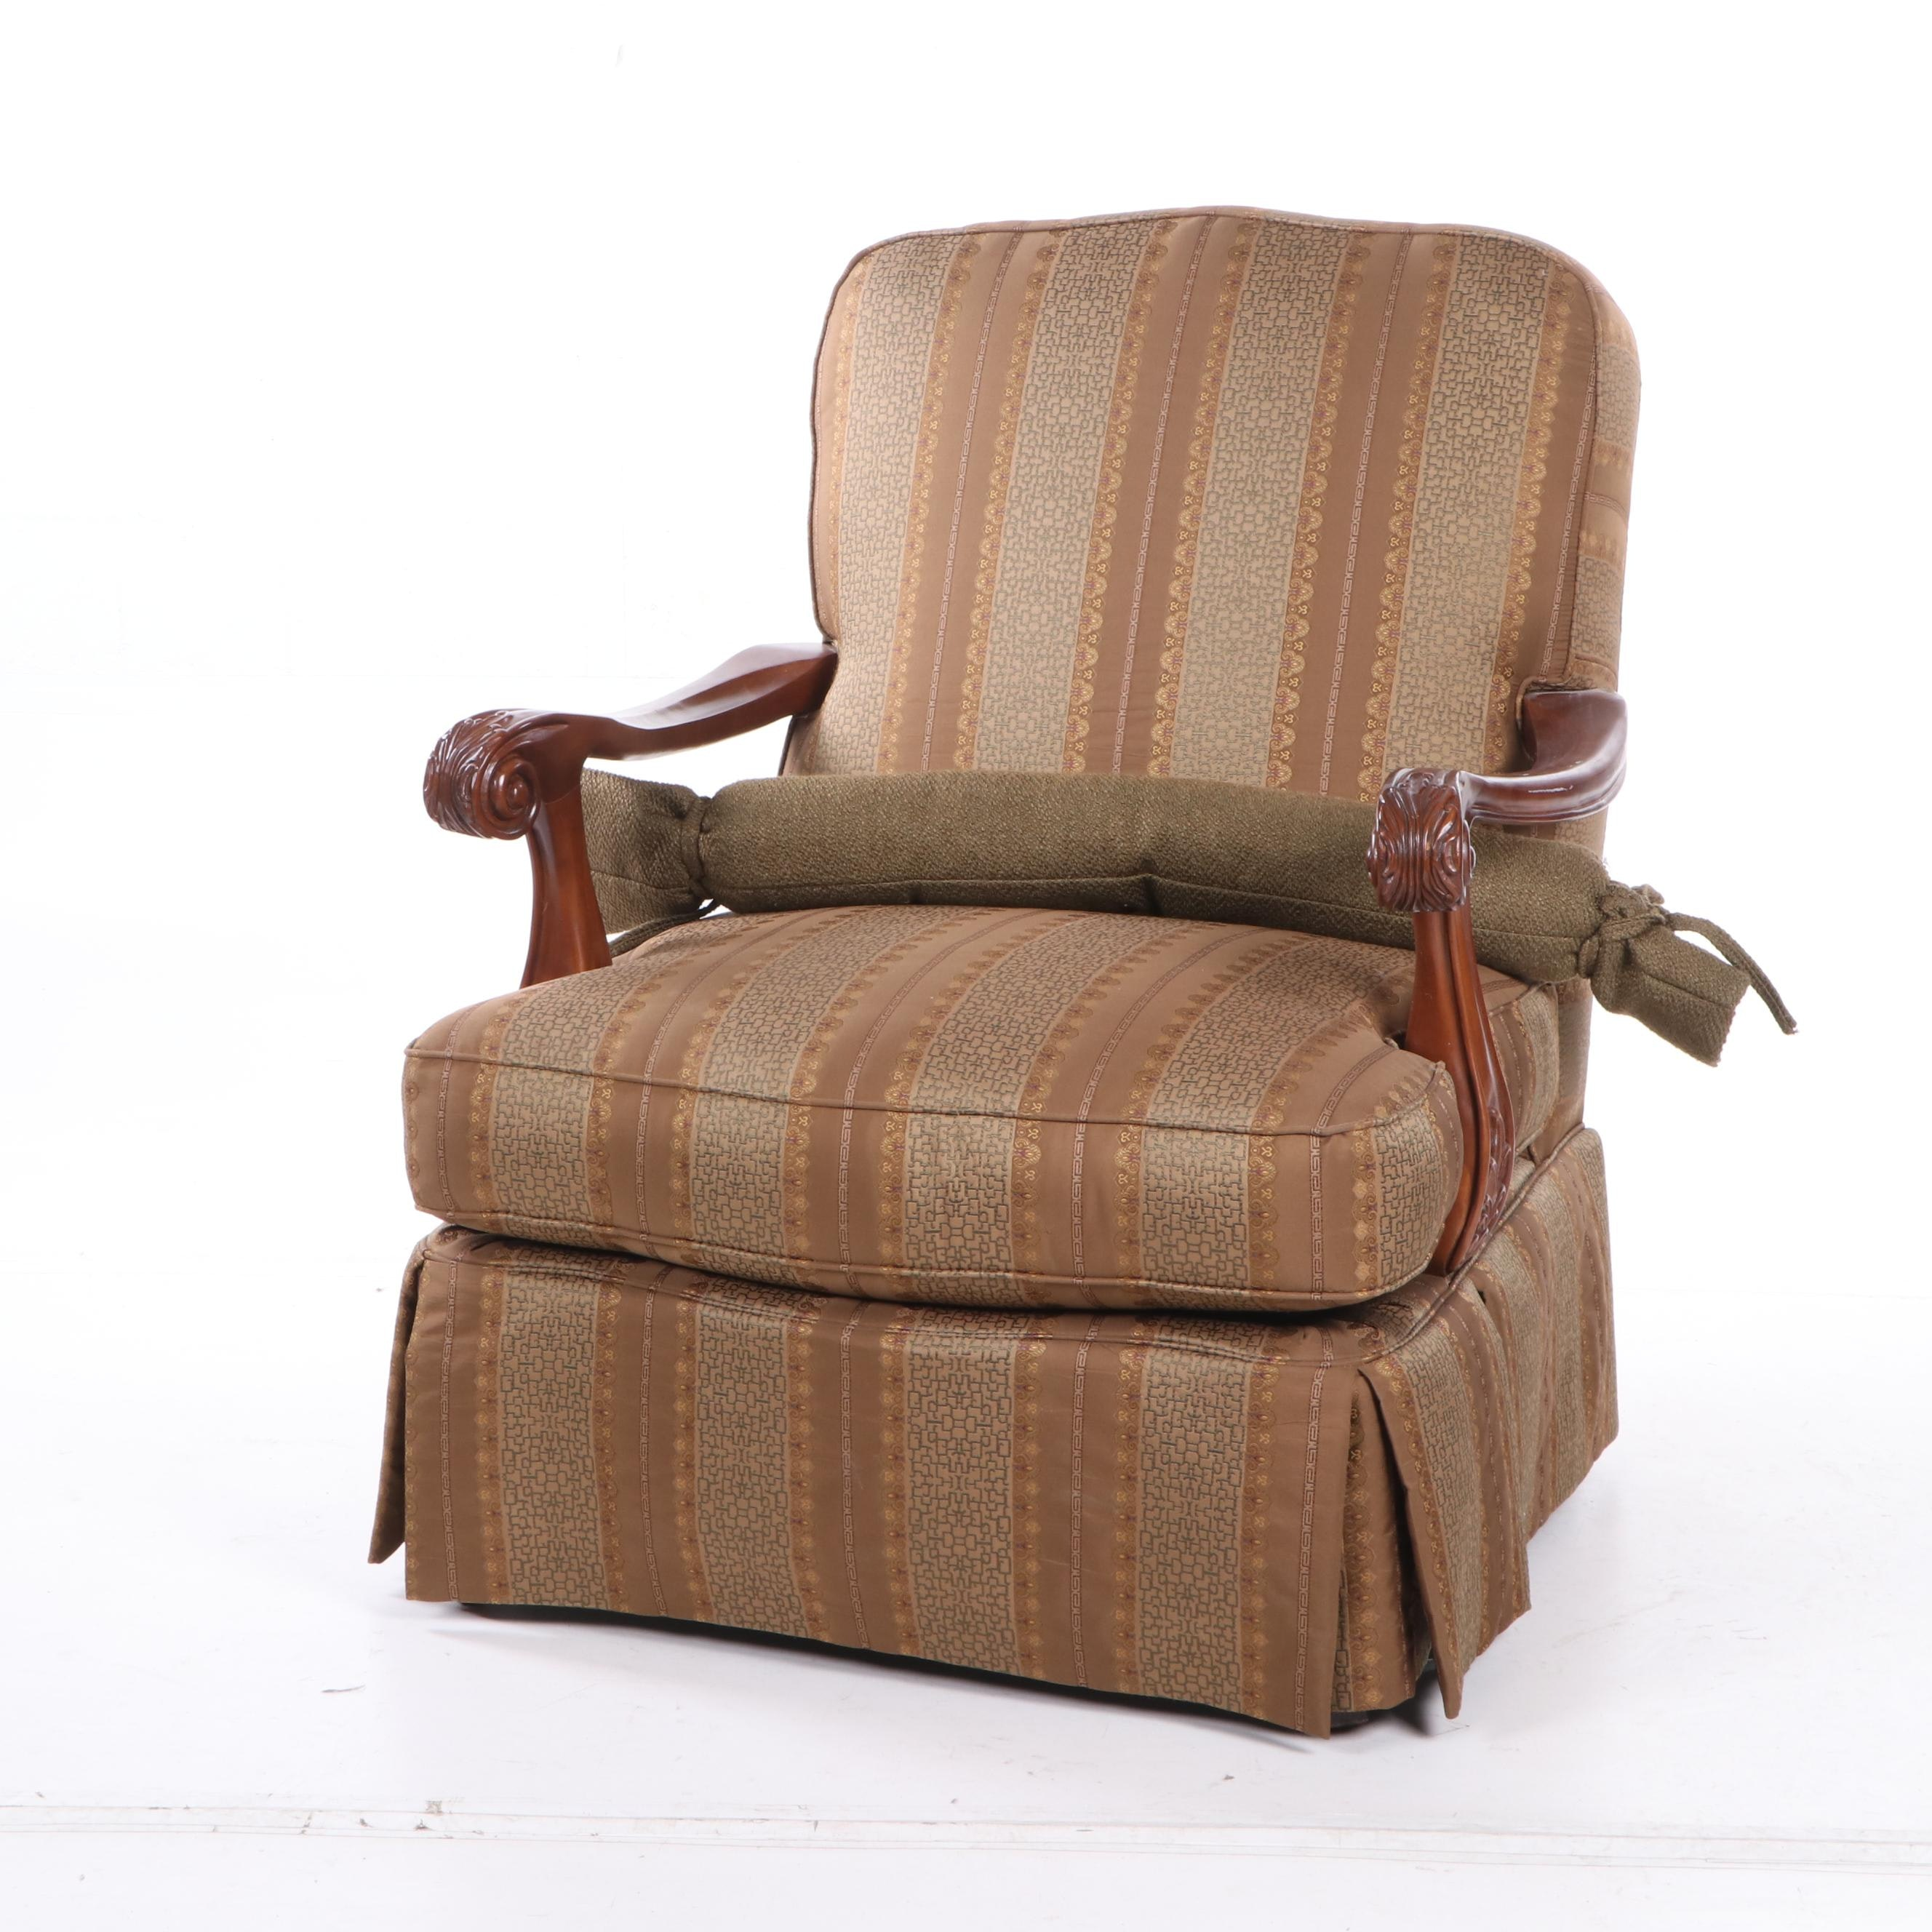 Contemporary Upholstered Armchair, Thomasville